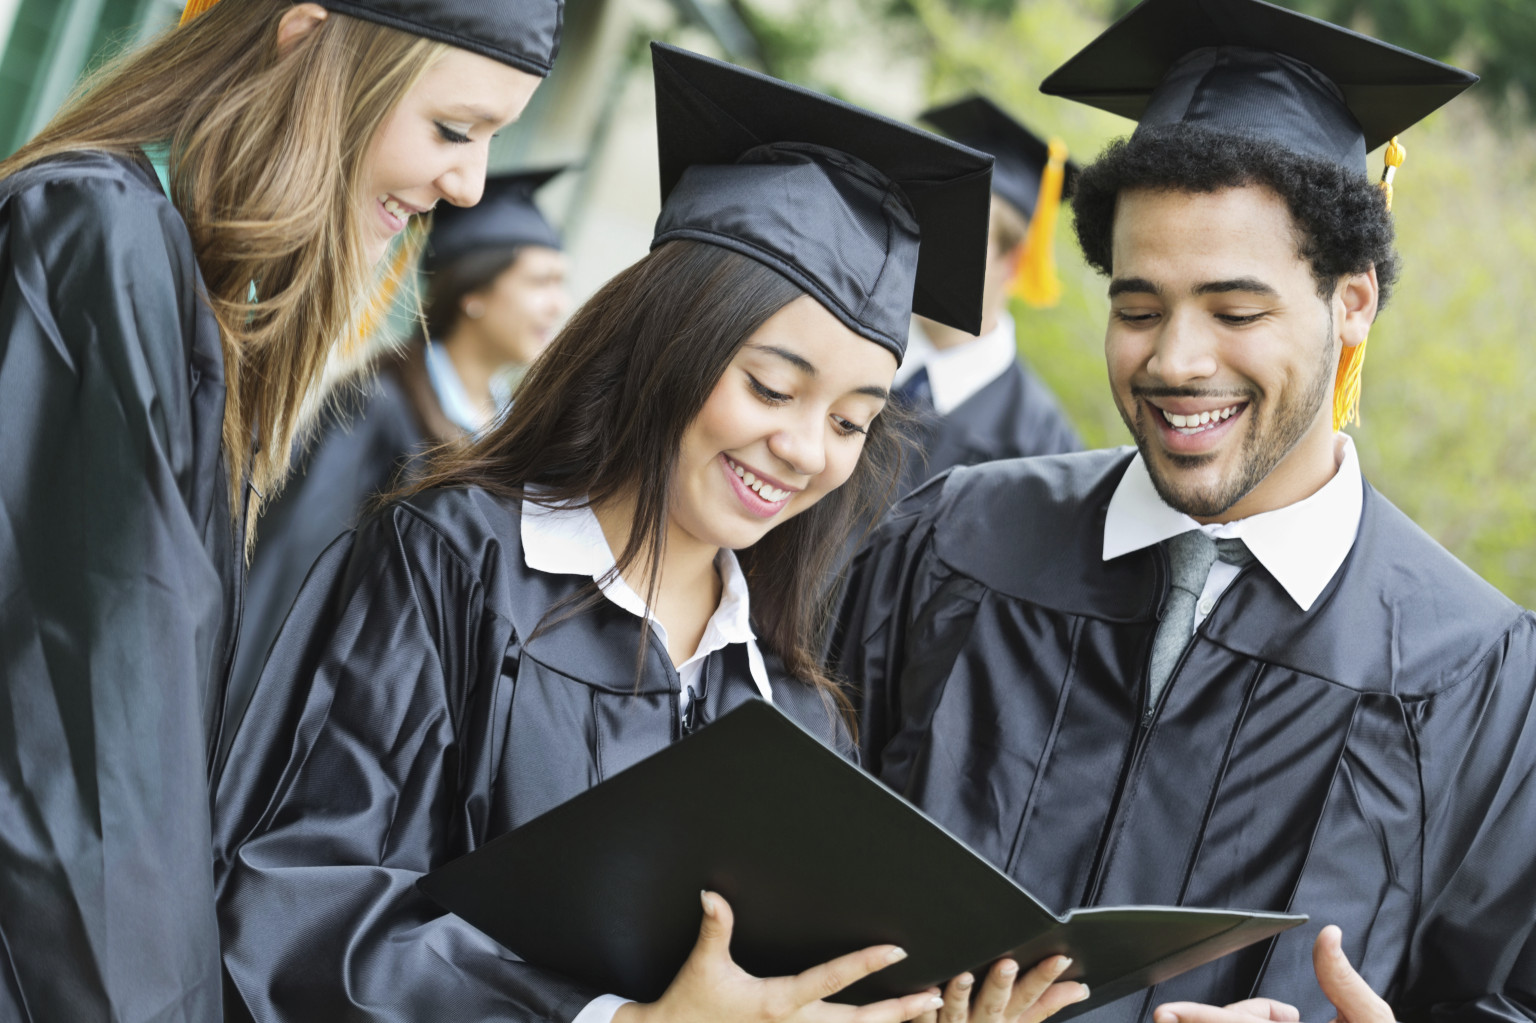 graduation thesis proposal The thesis proposal examination is designed to evaluate a candidate's ability to plan, conduct and communicate independent research in both oral and written form.